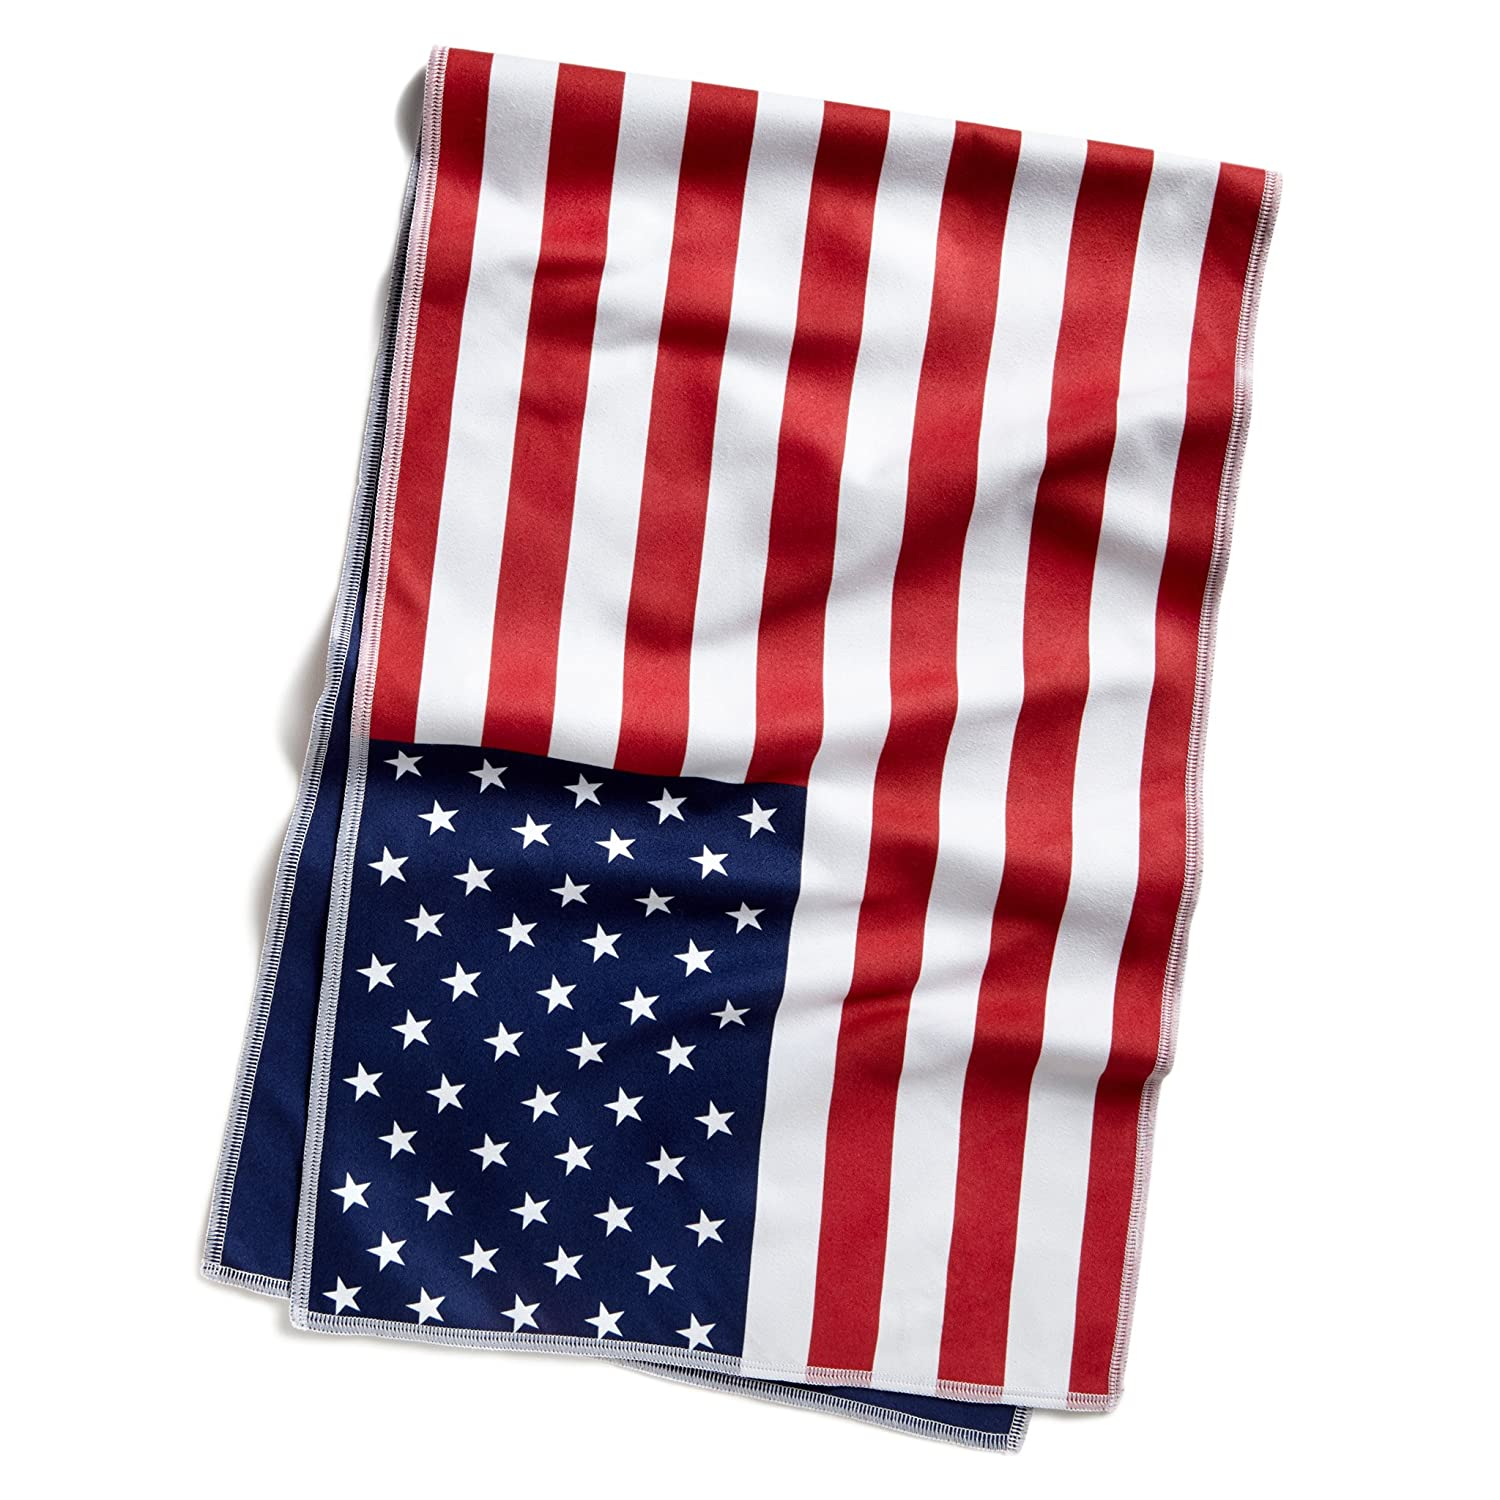 "Mission HydroActive Original Microfiber Large Cooling Towel, USA Flag, 10"" x 33"""